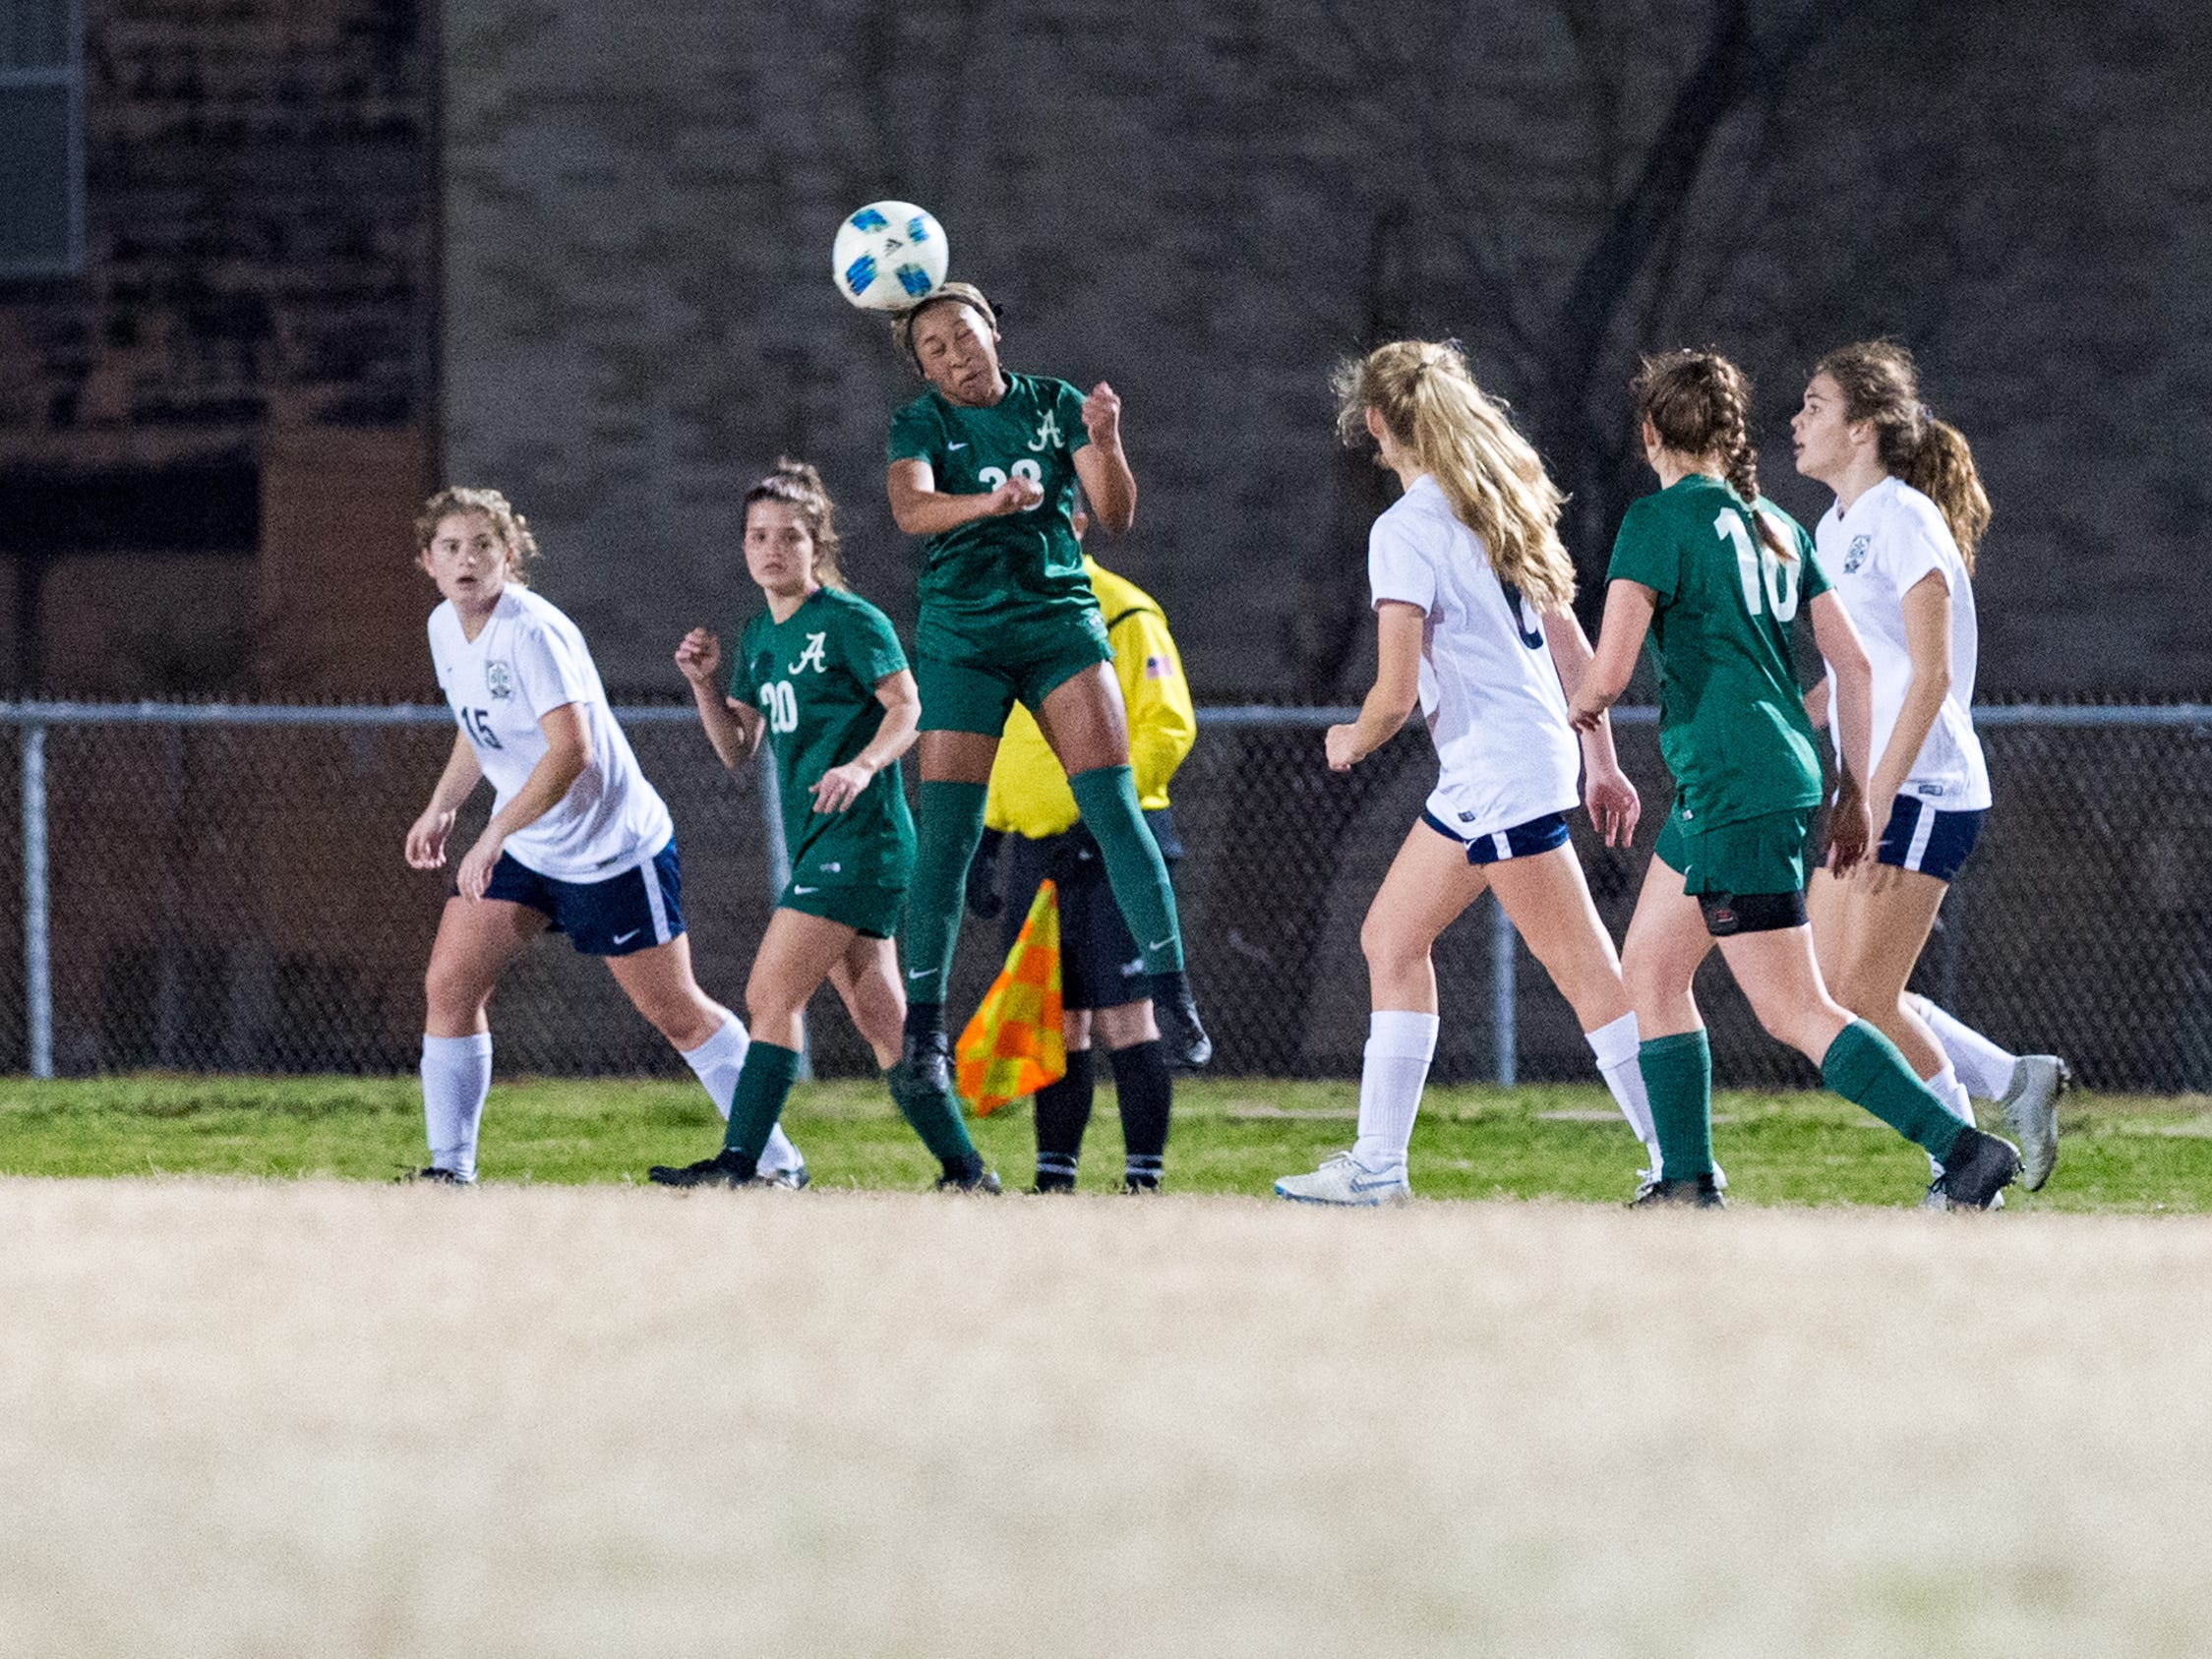 Rammie Noel header as Acadiana takes on STM girls soccer. Monday, Jan. 28, 2019.